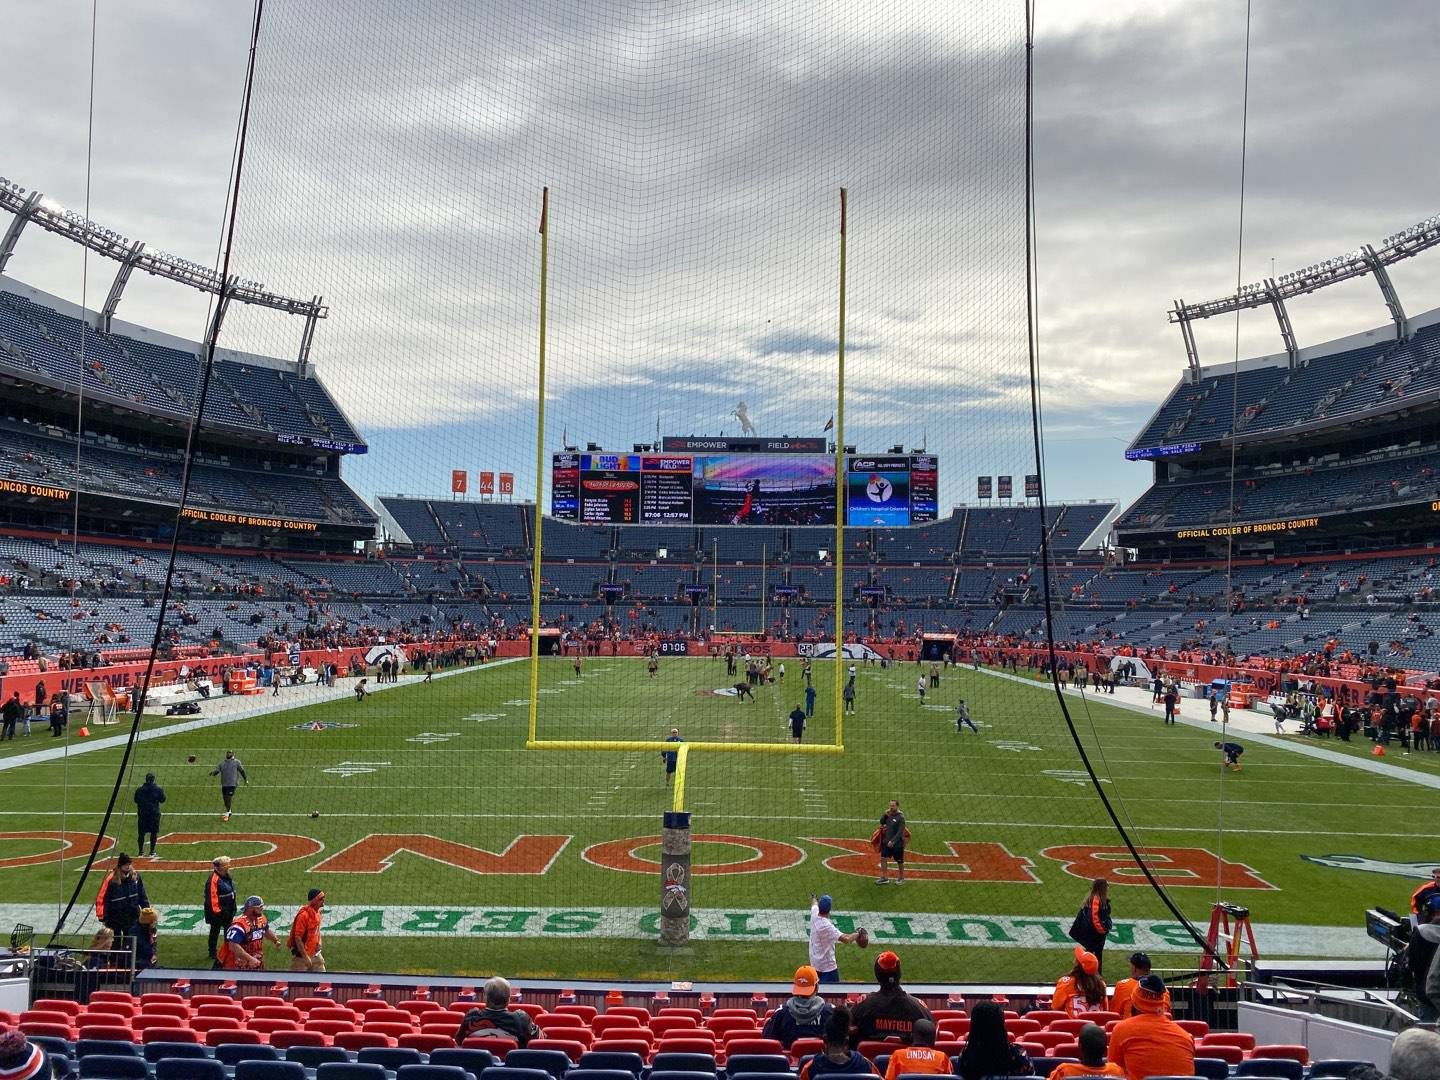 Empower Field at Mile High Stadium Section 114 Row 15 Seat 10